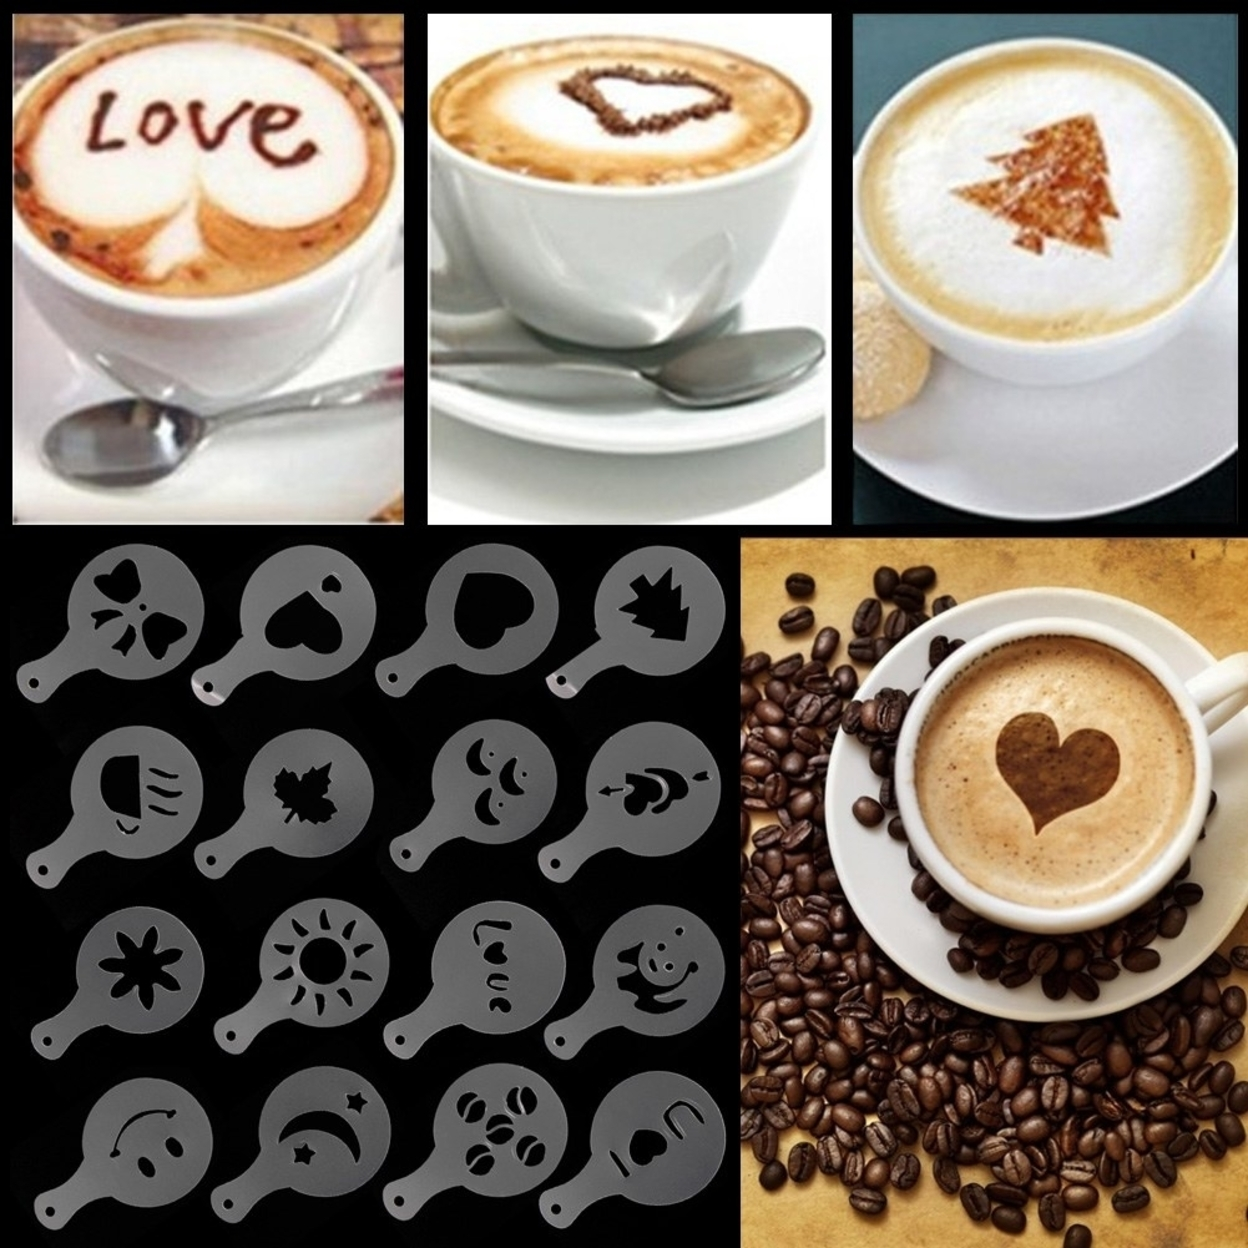 Coffee Barista Stencils 16pc Set 569d55f5503d6f71458b4b4c